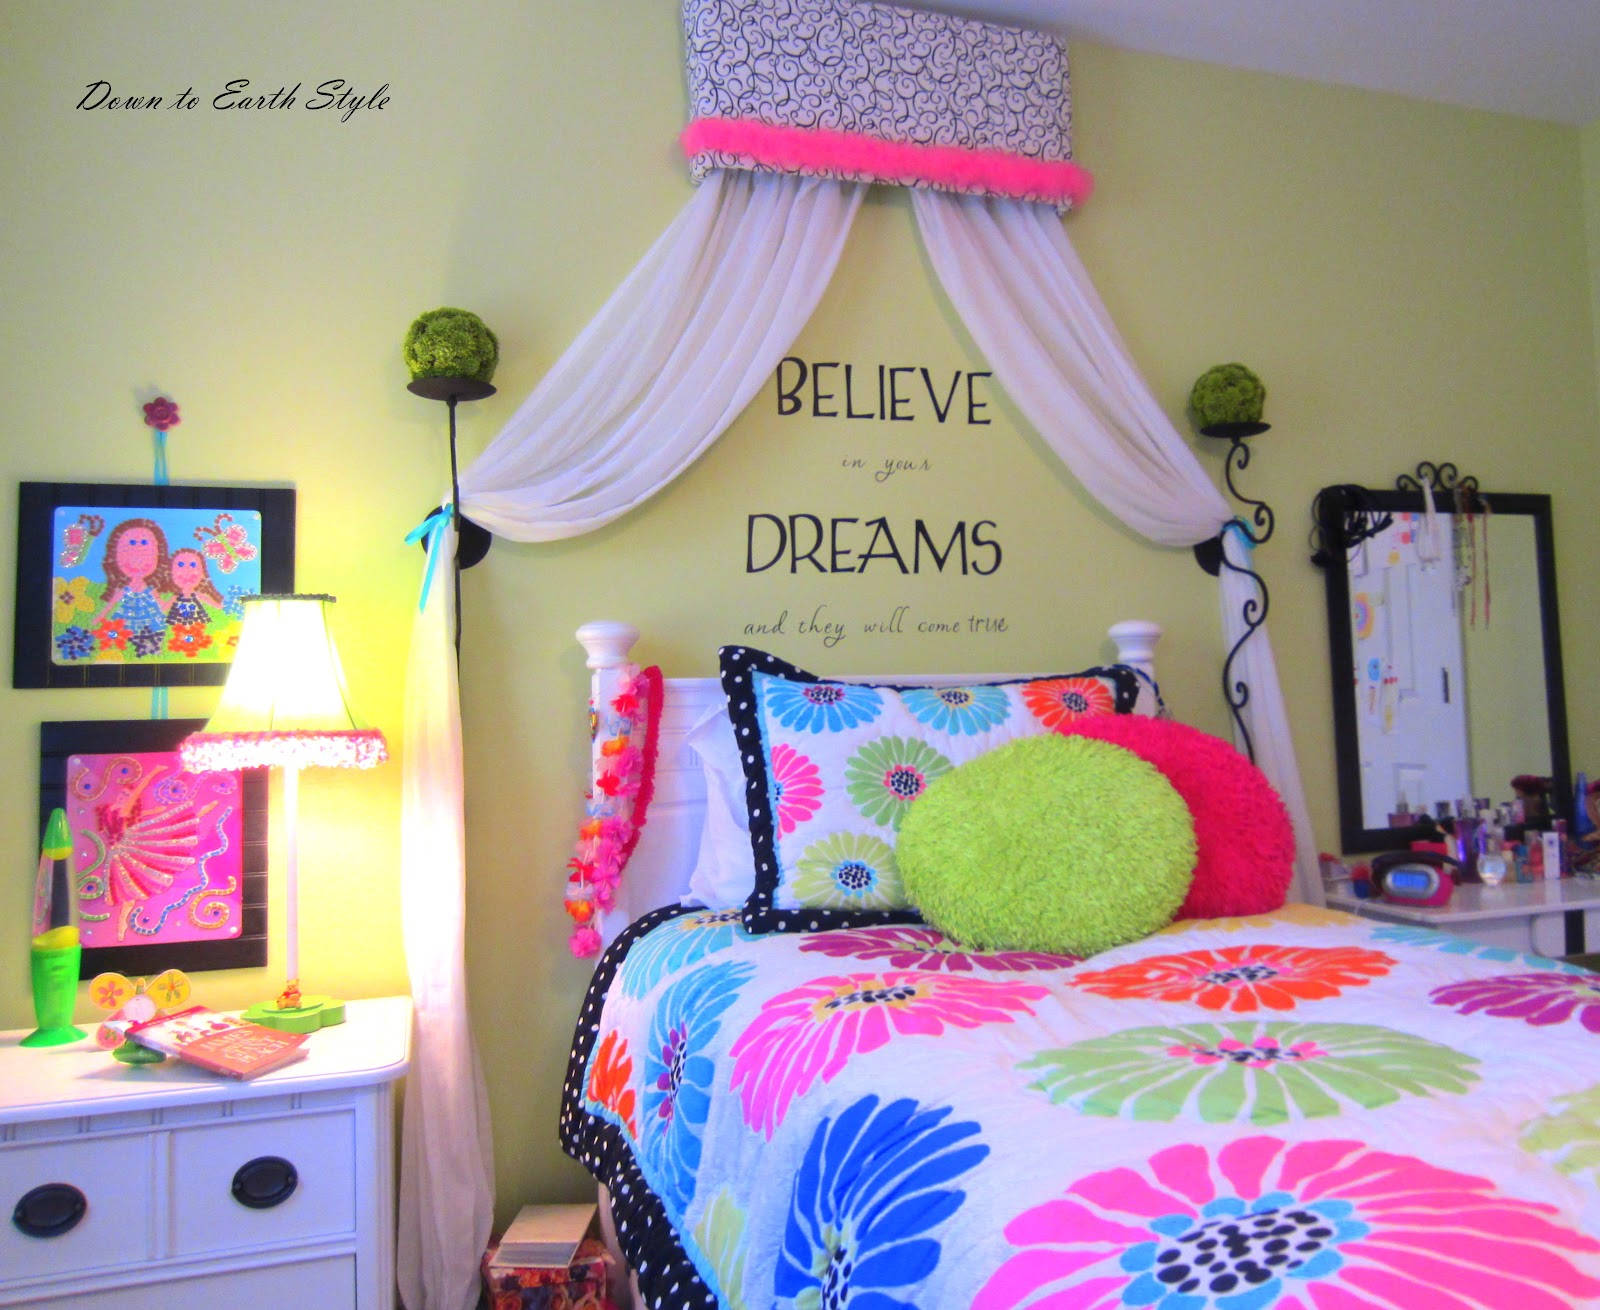 Down To Earth Style Tween Girl Room